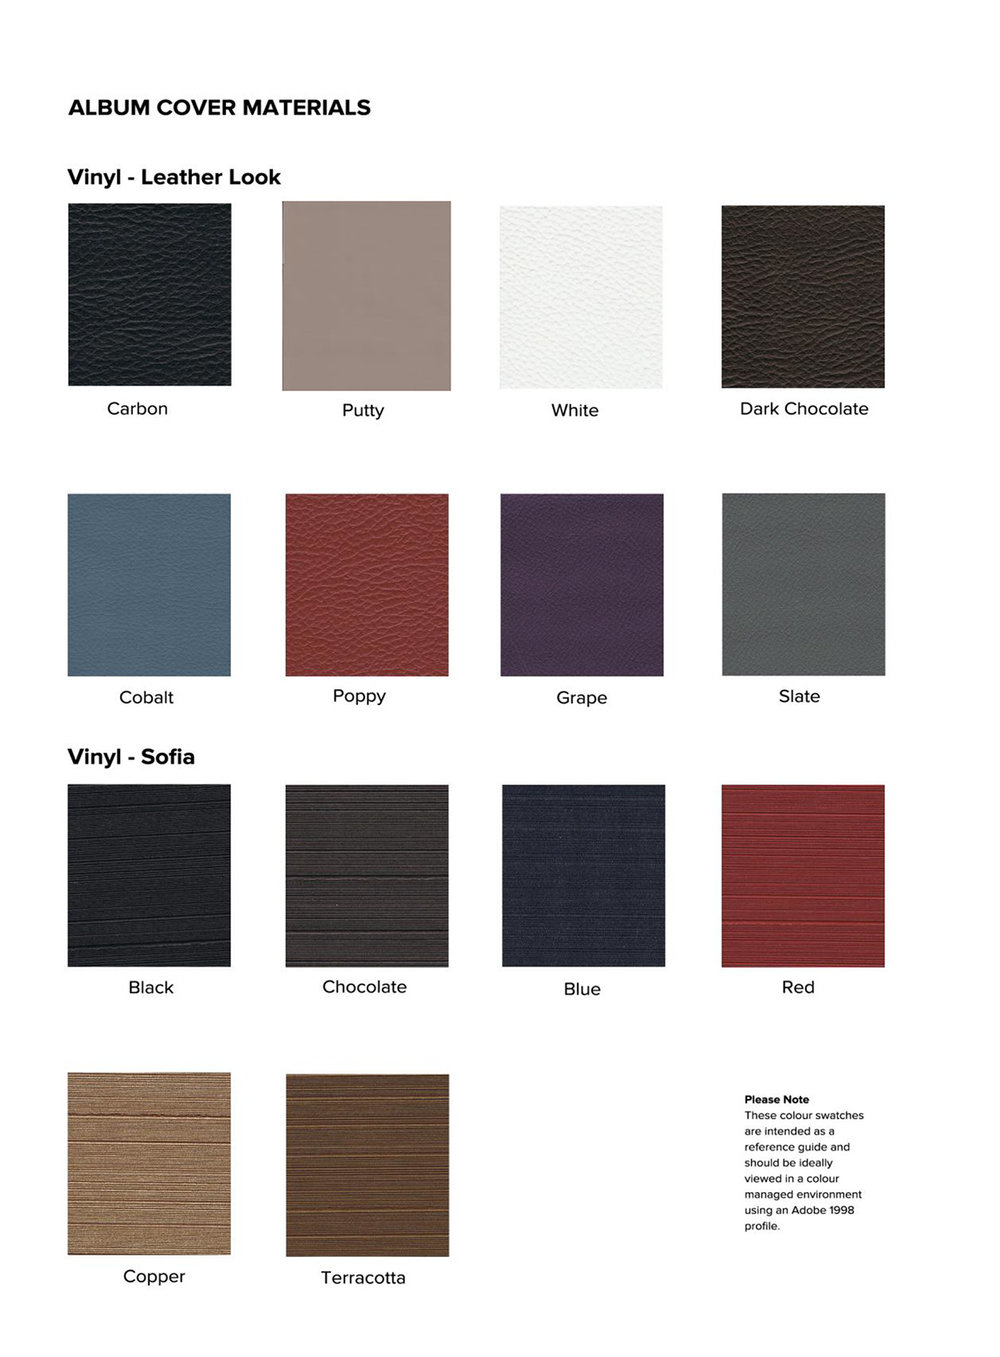 Click to view Vinyl (Faux Leather) & Vinyl (Sophia) Covers